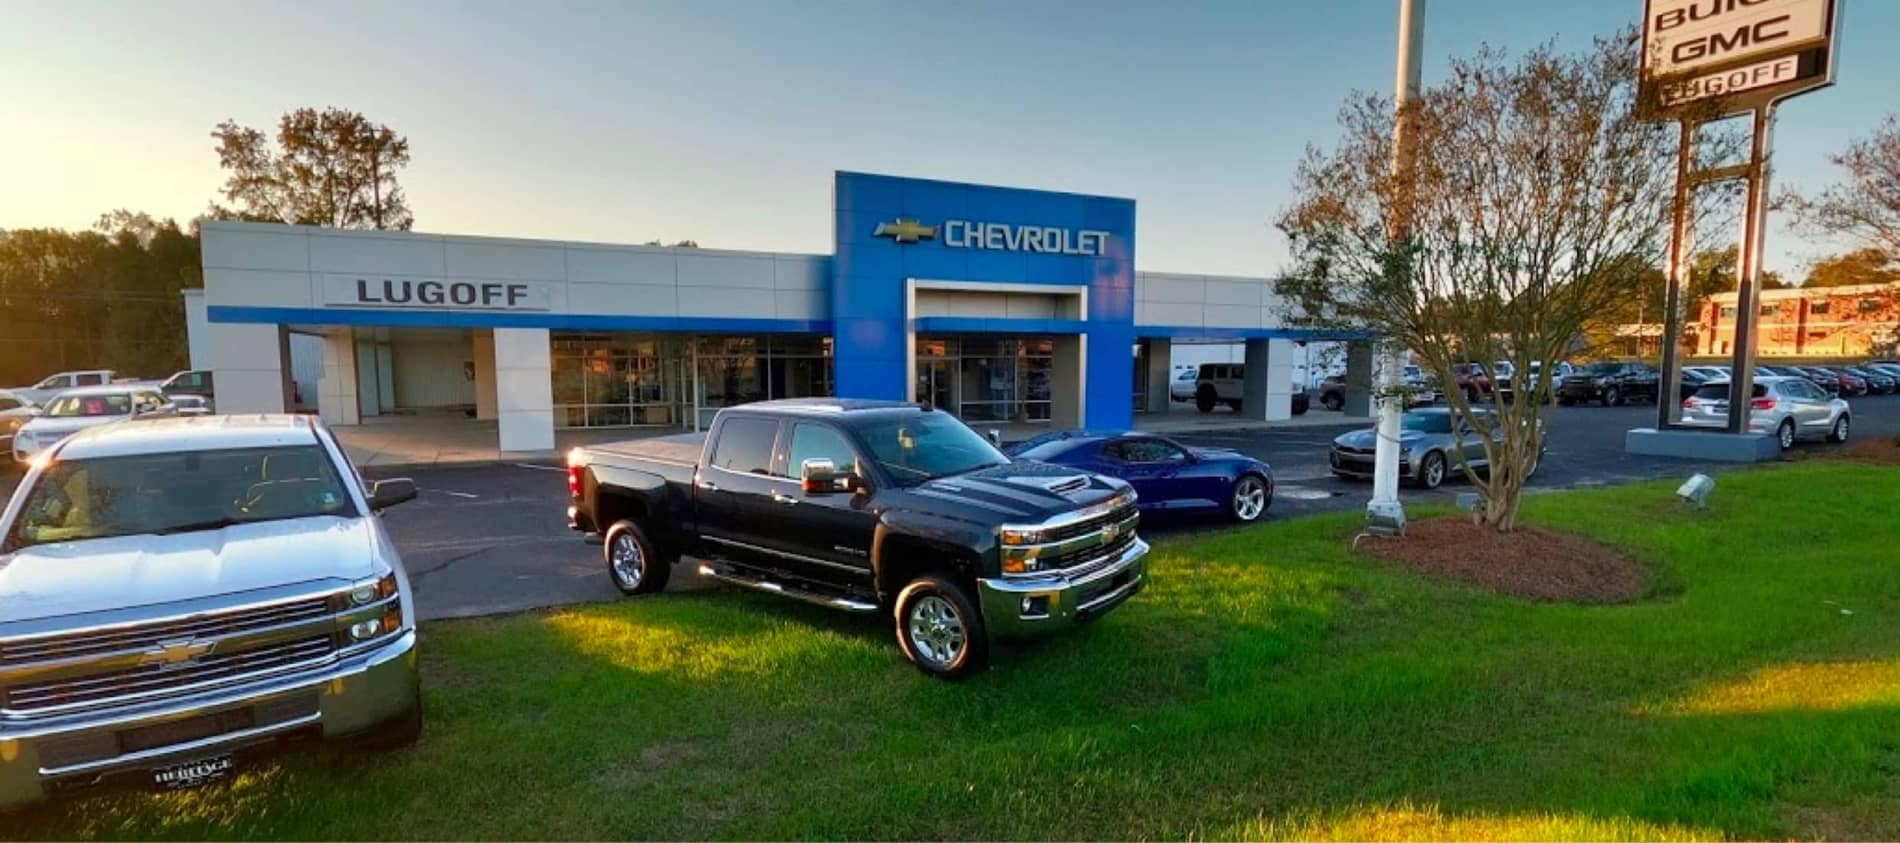 Lugoff Chevrolet Buick Gmc Buick Chevrolet Gmc Dealer In Lugoff Sc